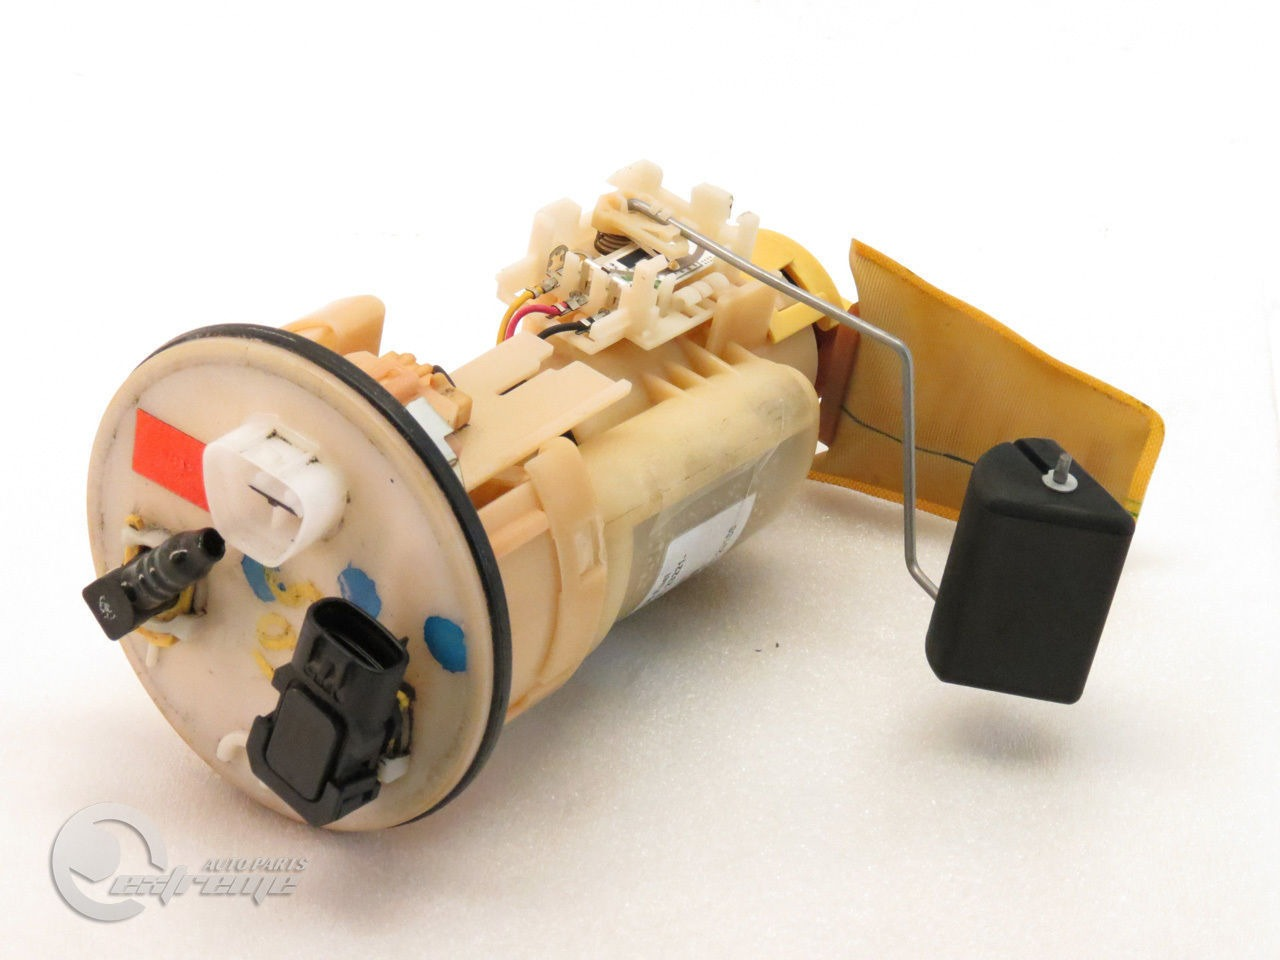 ... Toyota Solara 04-06 Camry 03-06 Fuel Filter Gas Pump Assembly 4 Cyl